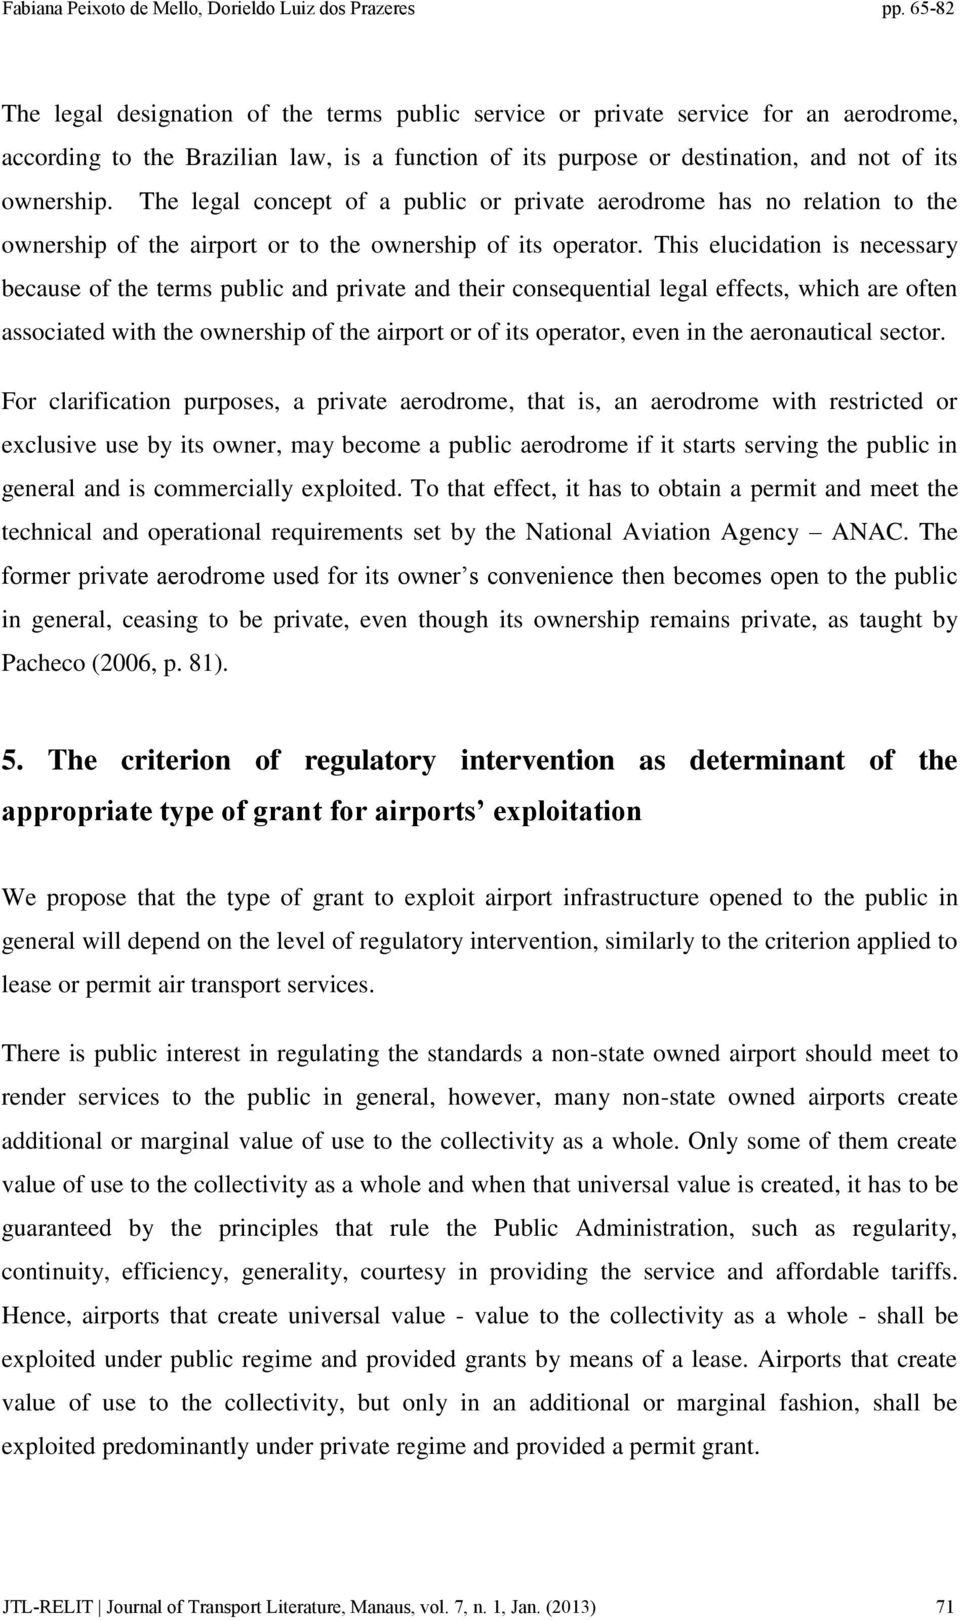 This elucidation is necessary because of the terms public and private and their consequential legal effects, which are often associated with the ownership of the airport or of its operator, even in